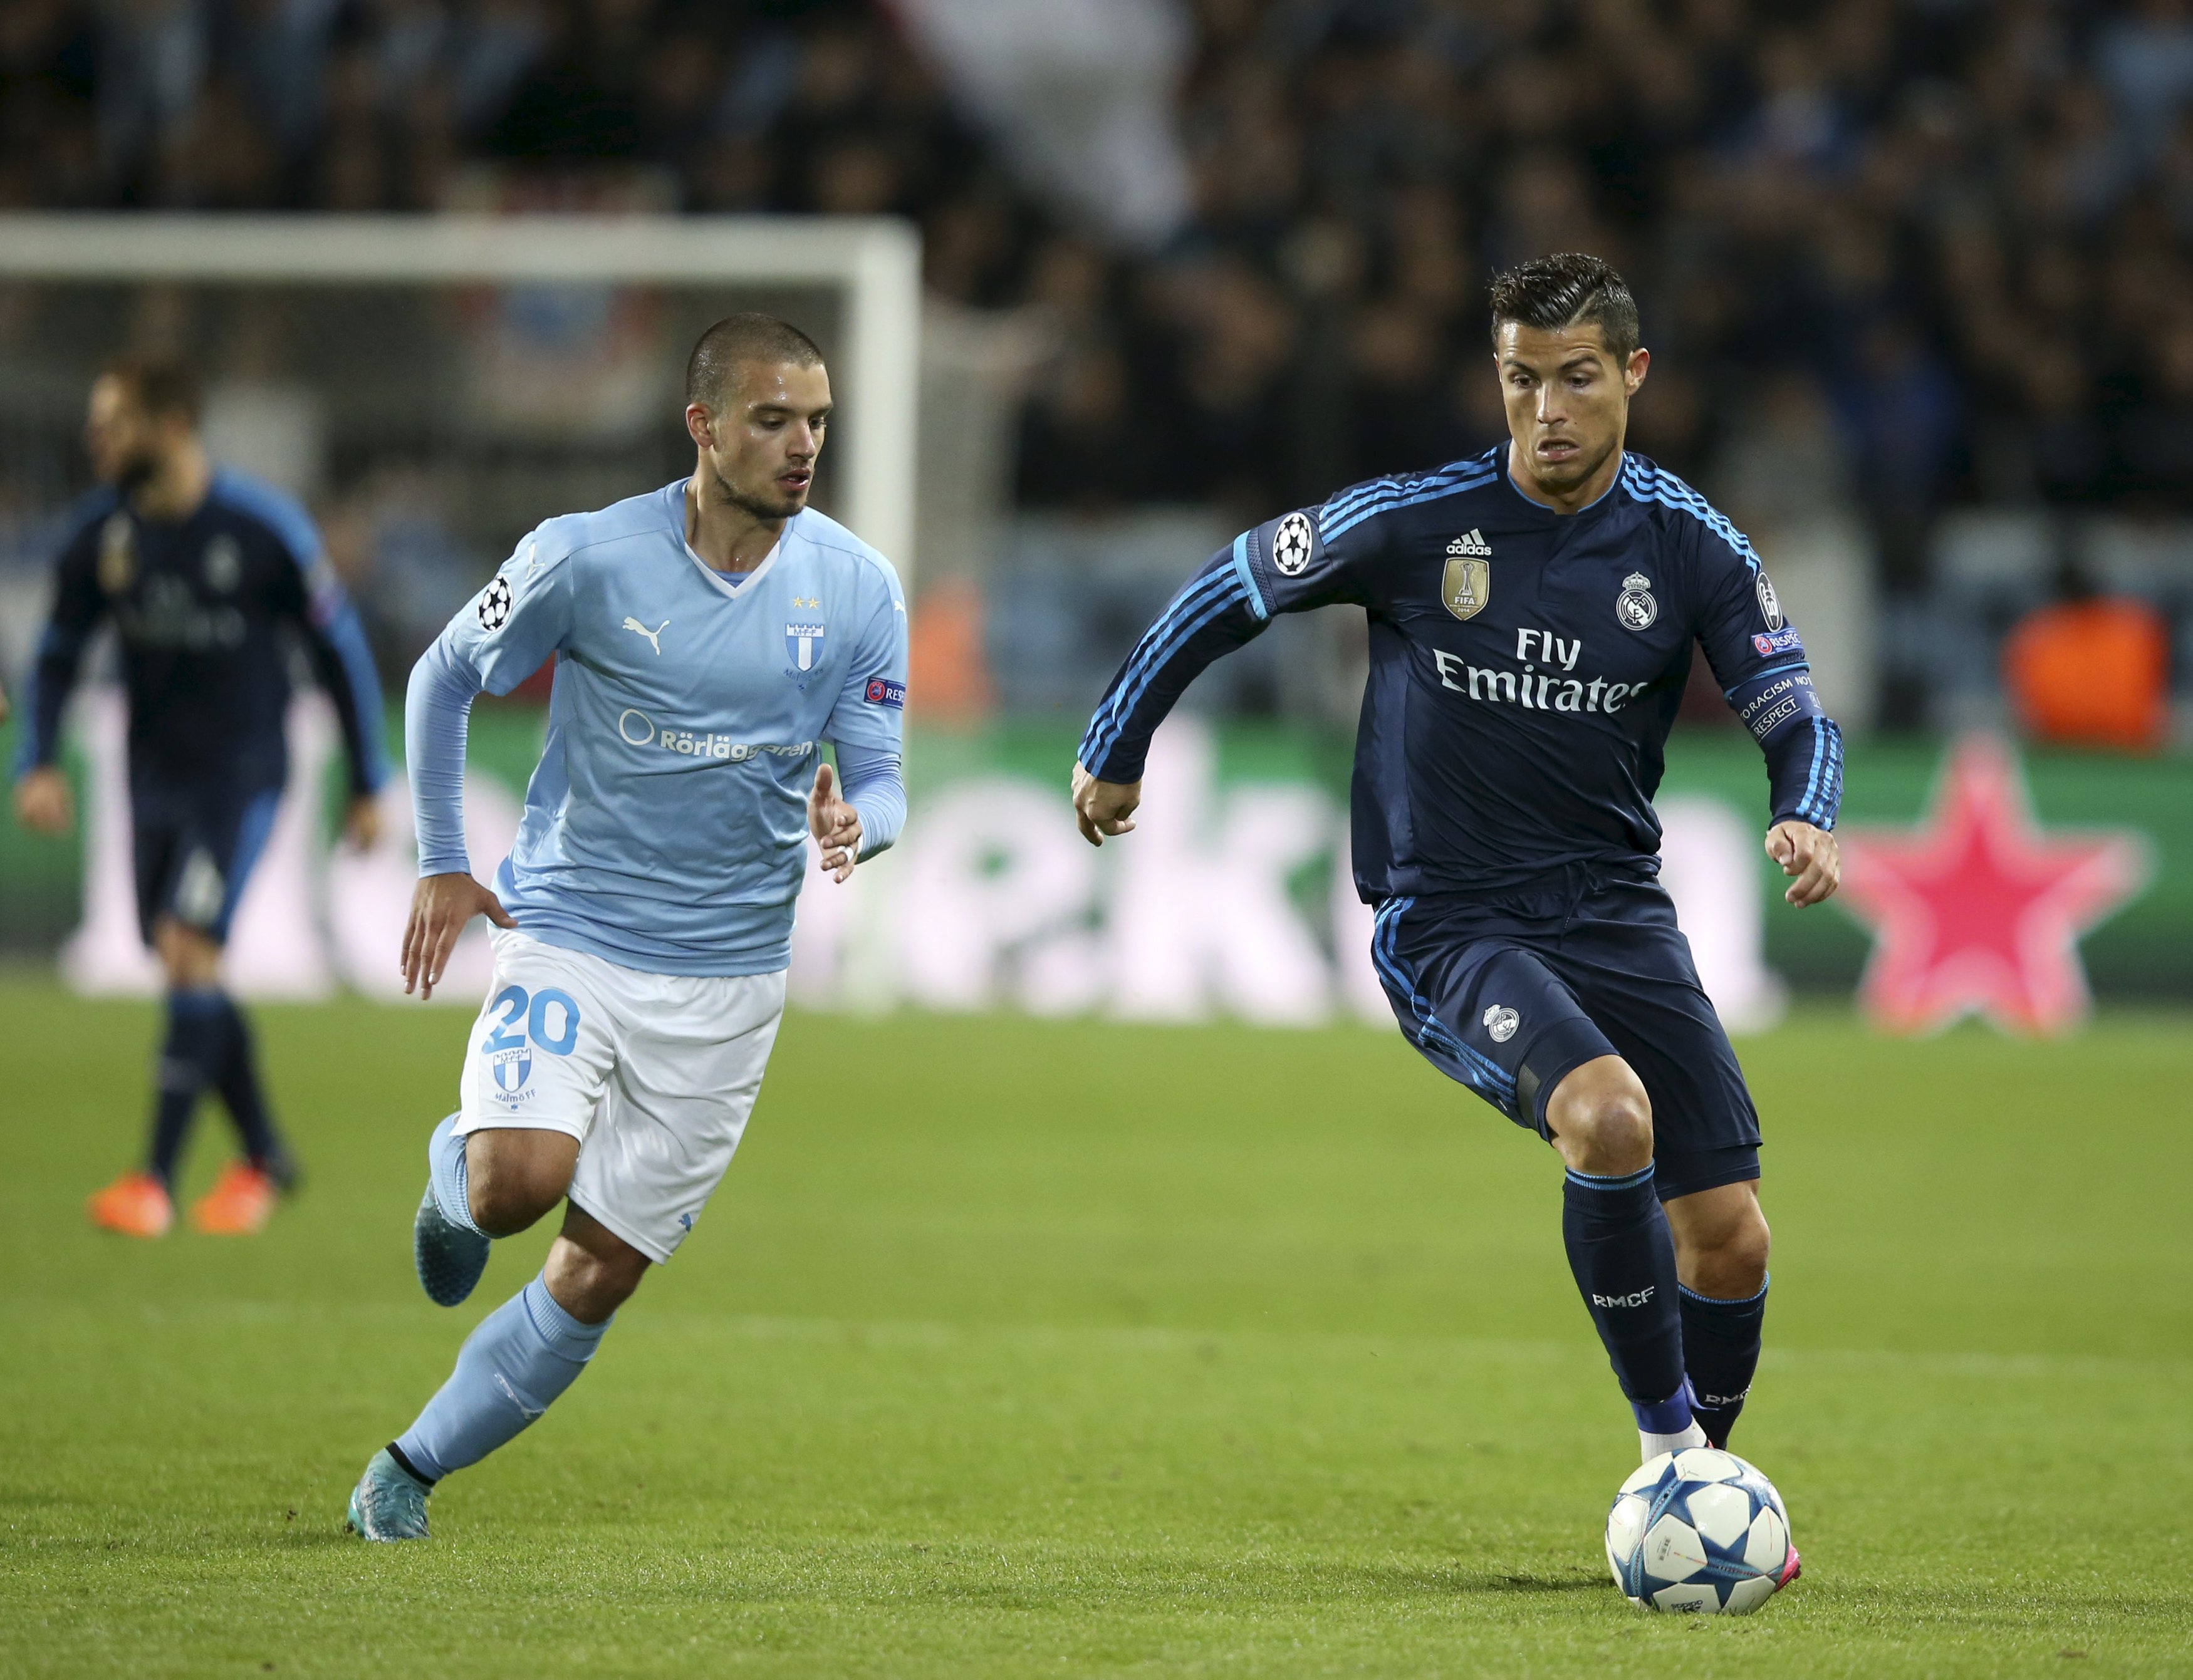 Malmo FF's Vladimir Rodic (L) challenges Real Madrid's Cristiano Ronaldo during their Champions League group A soccer match at Malmo New Stadium in Malmo, Sweden September 30, 2015. REUTERS/Andreas Hillergren/TT News Agency  ATTENTION EDITORS - THIS IMAGE WAS PROVIDED BY A THIRD PARTY. THIS PICTURE IS DISTRIBUTED EXACTLY AS RECEIVED BY REUTERS, AS A SERVICE TO CLIENTS. FOR EDITORIAL USE ONLY. NOT FOR SALE FOR MARKETING OR ADVERTISING CAMPAIGNS. SWEDEN OUT. NO COMMERCIAL OR EDITORIAL SALES IN SWEDEN. NO COMMERCIAL SALES.